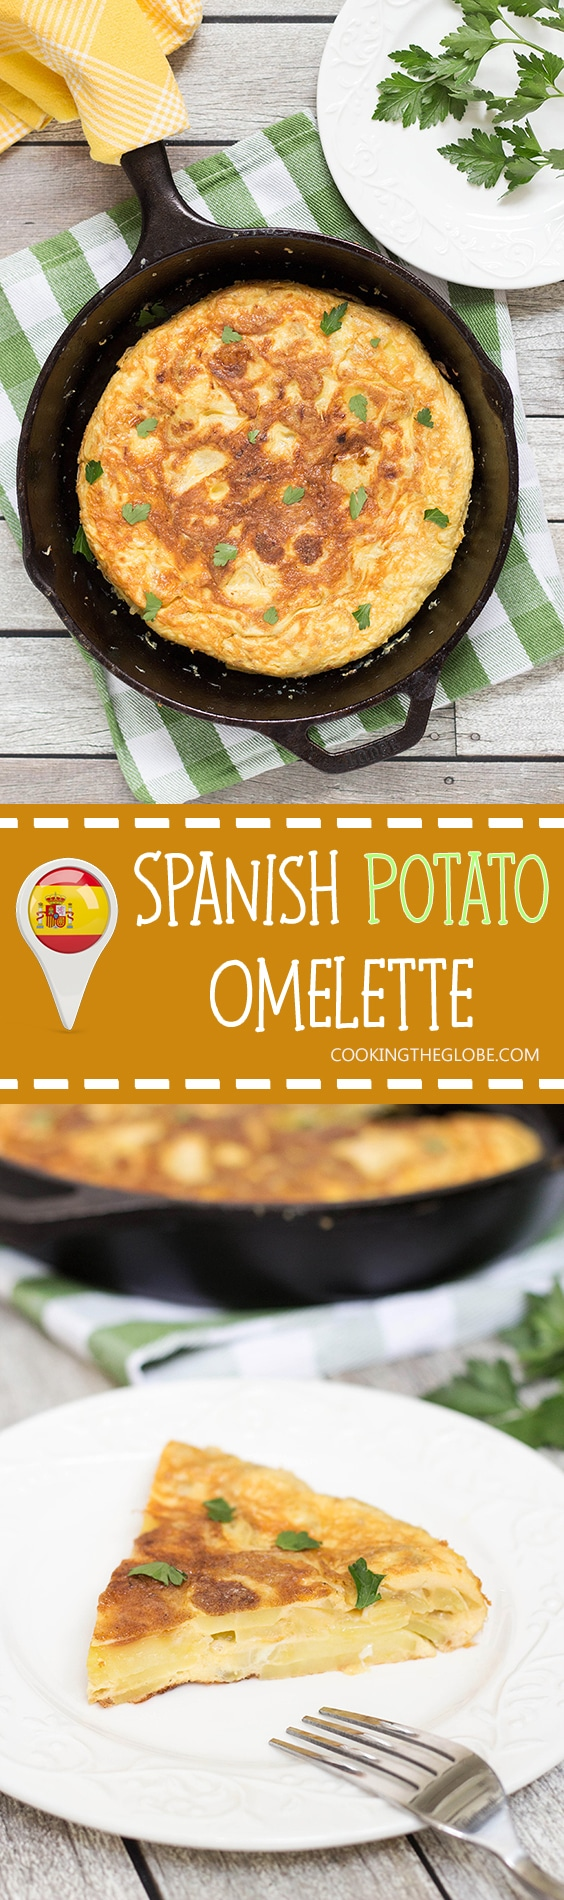 The famous Spanish Omelette (Tortilla) requires only few simple ...